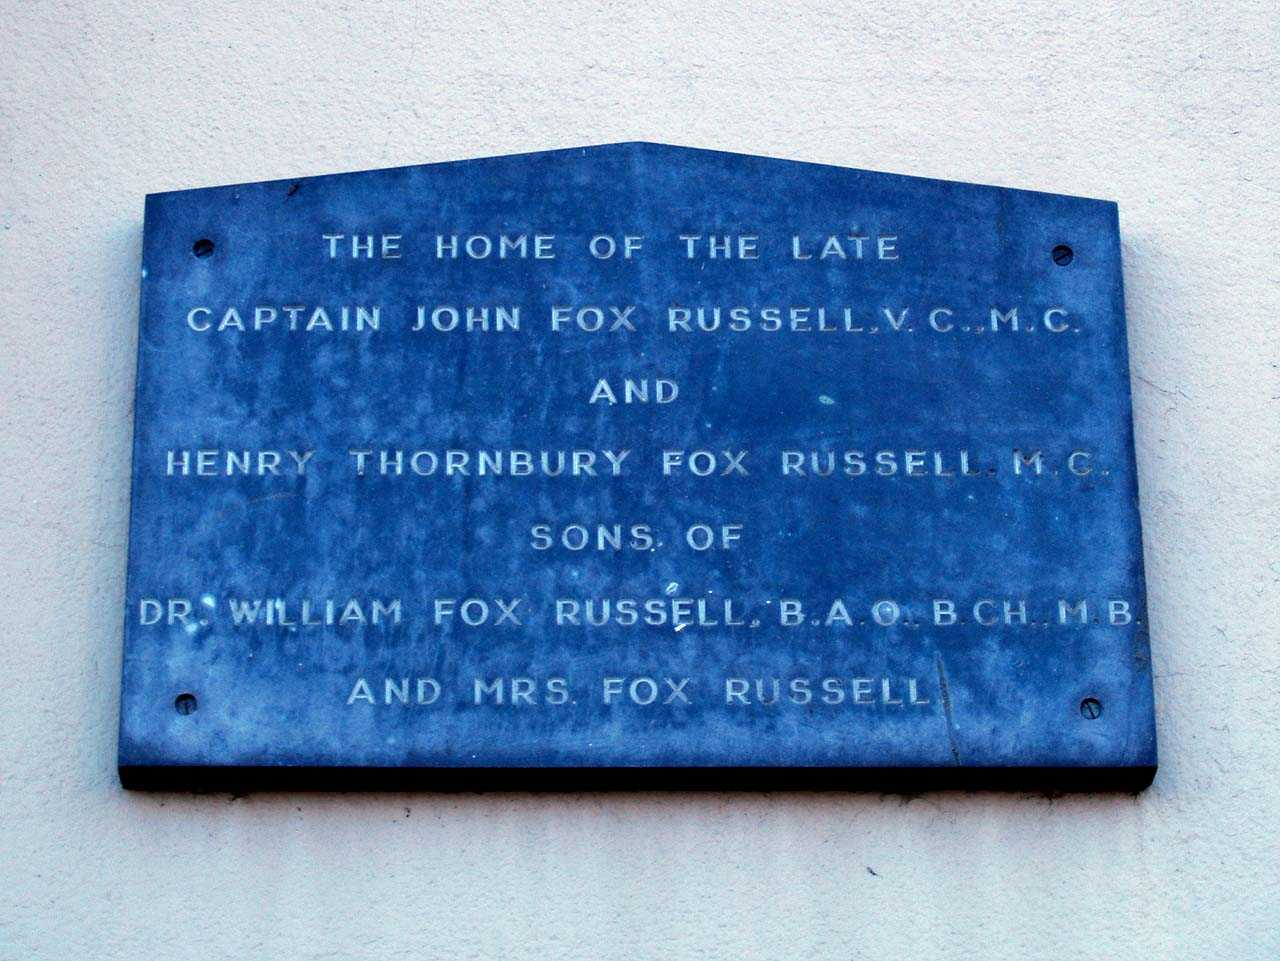 Plaque commemorating Captain John Fox-Russell and Captain Henry Thornbury Fox-Russell outside their home